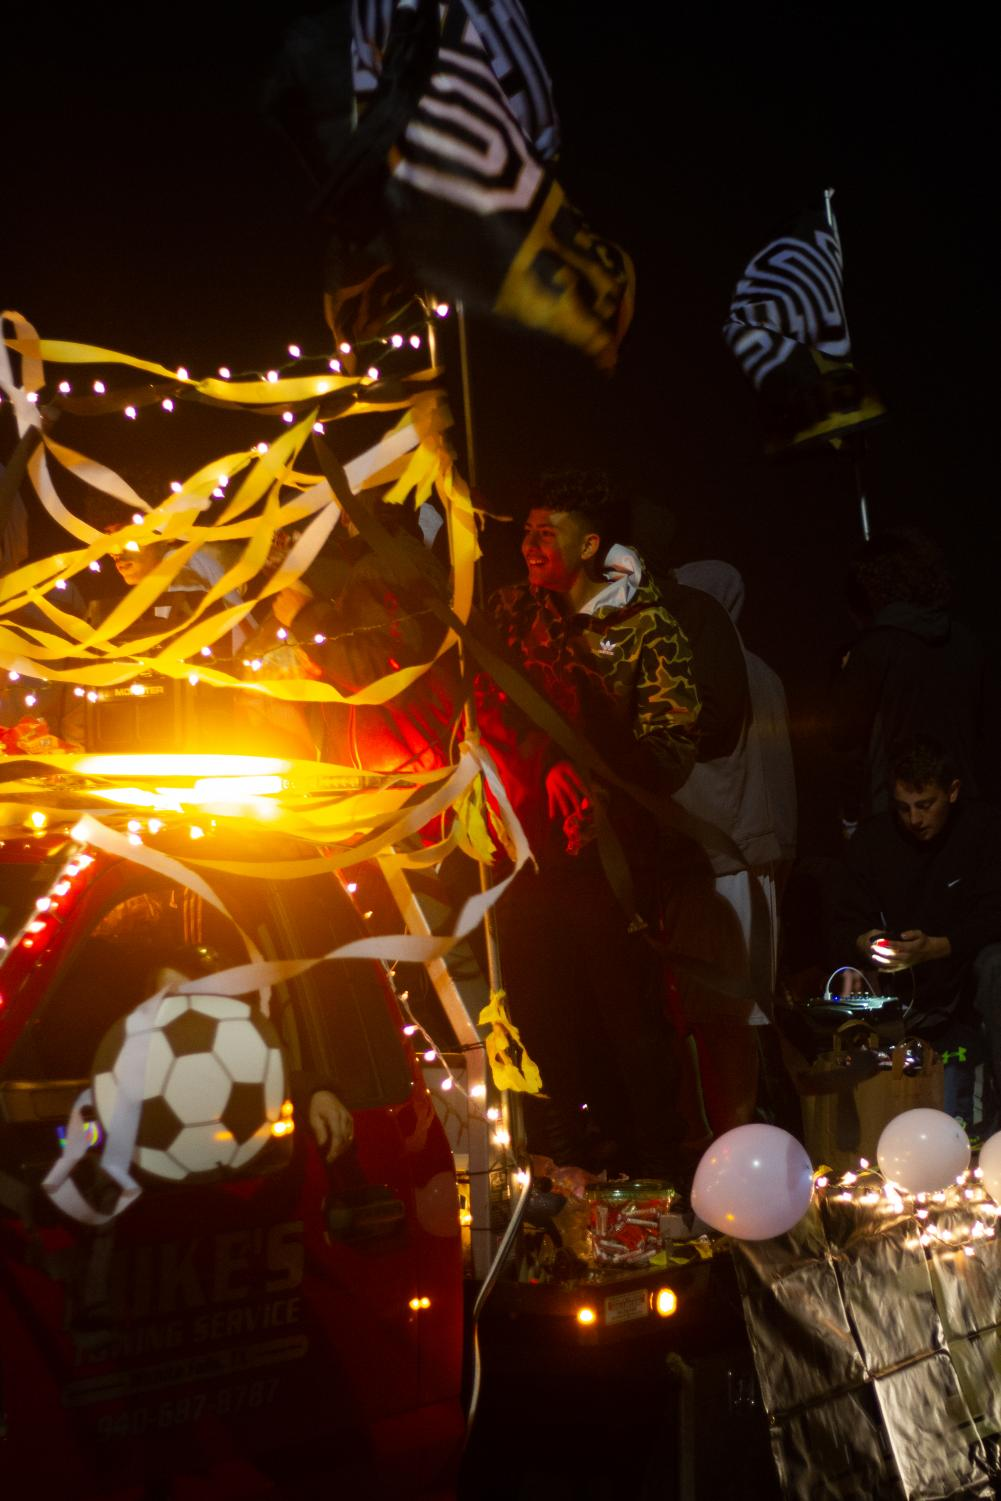 Last year in the Happening parade featured many organizations floats.